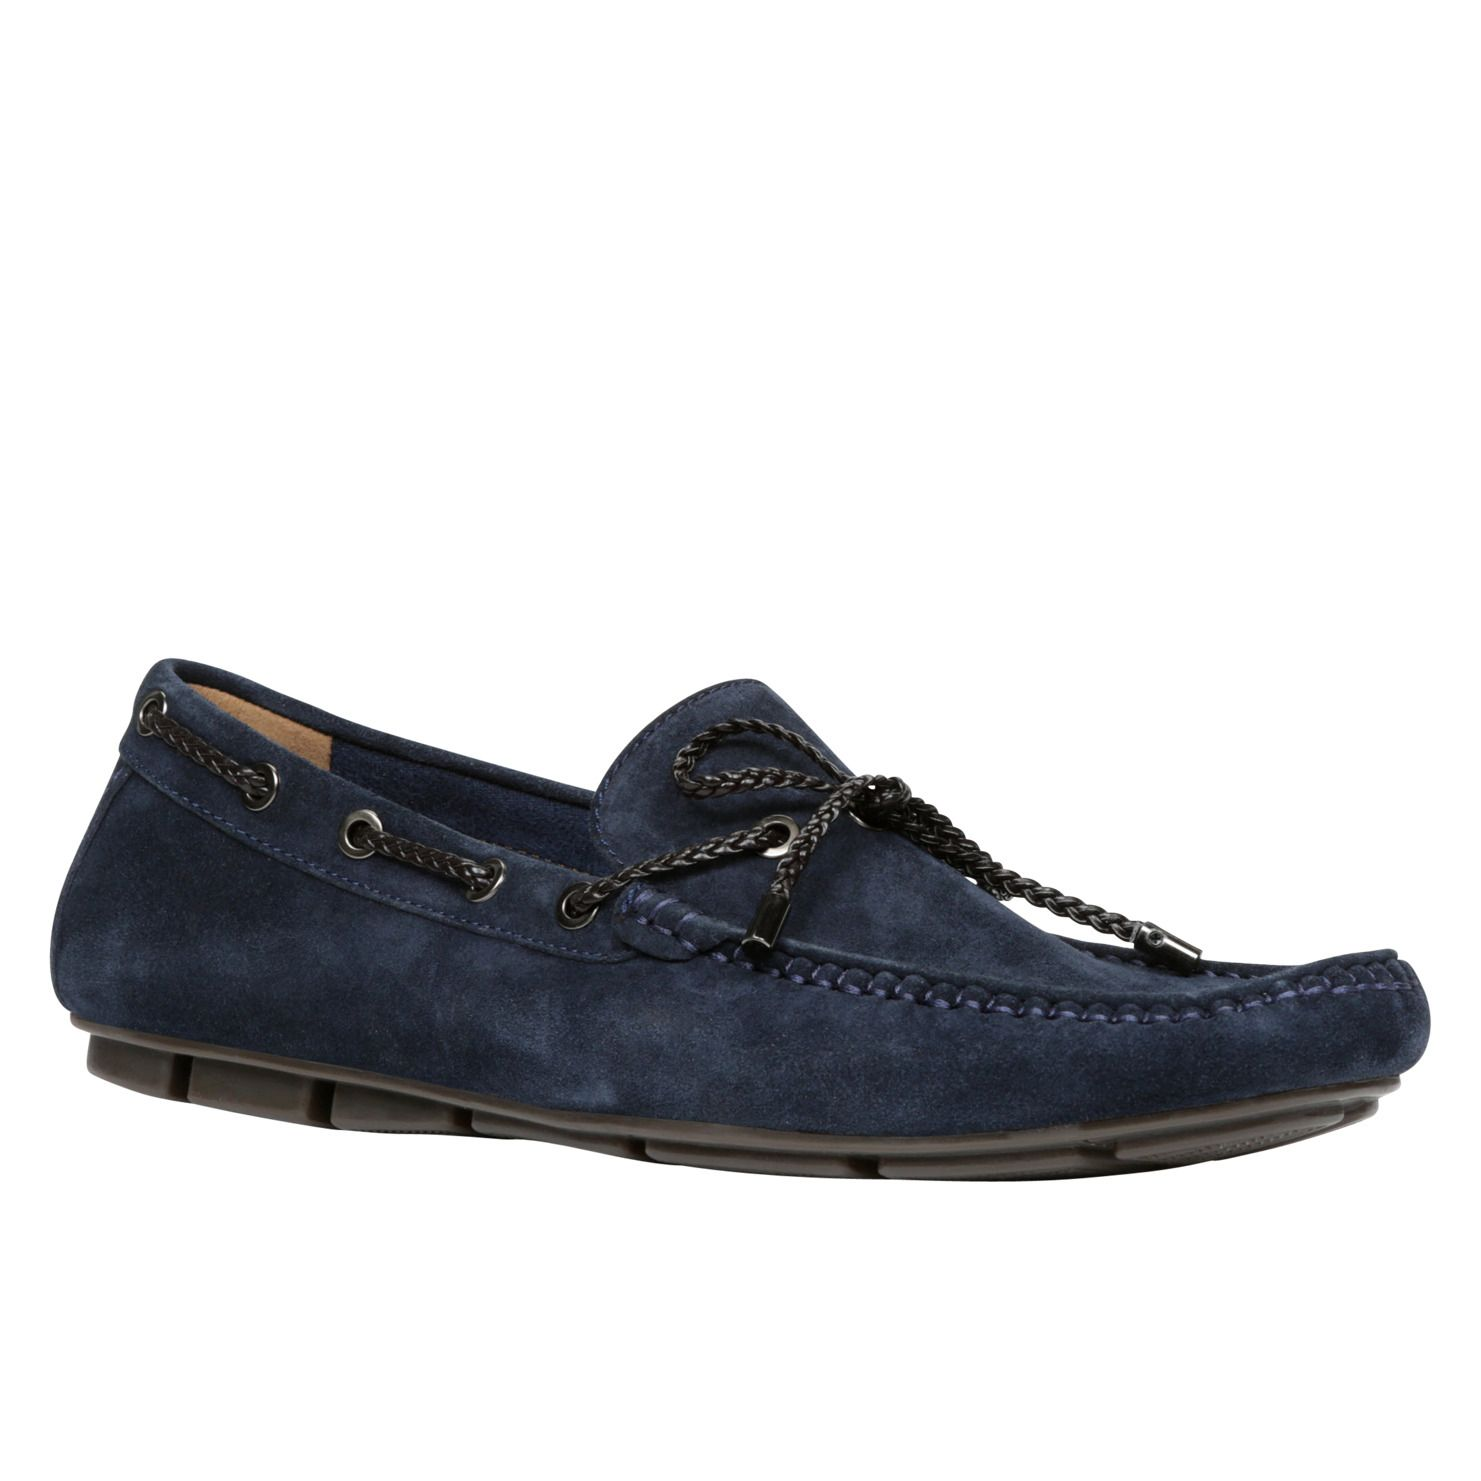 GAUTAM - men's casual loafers shoes for